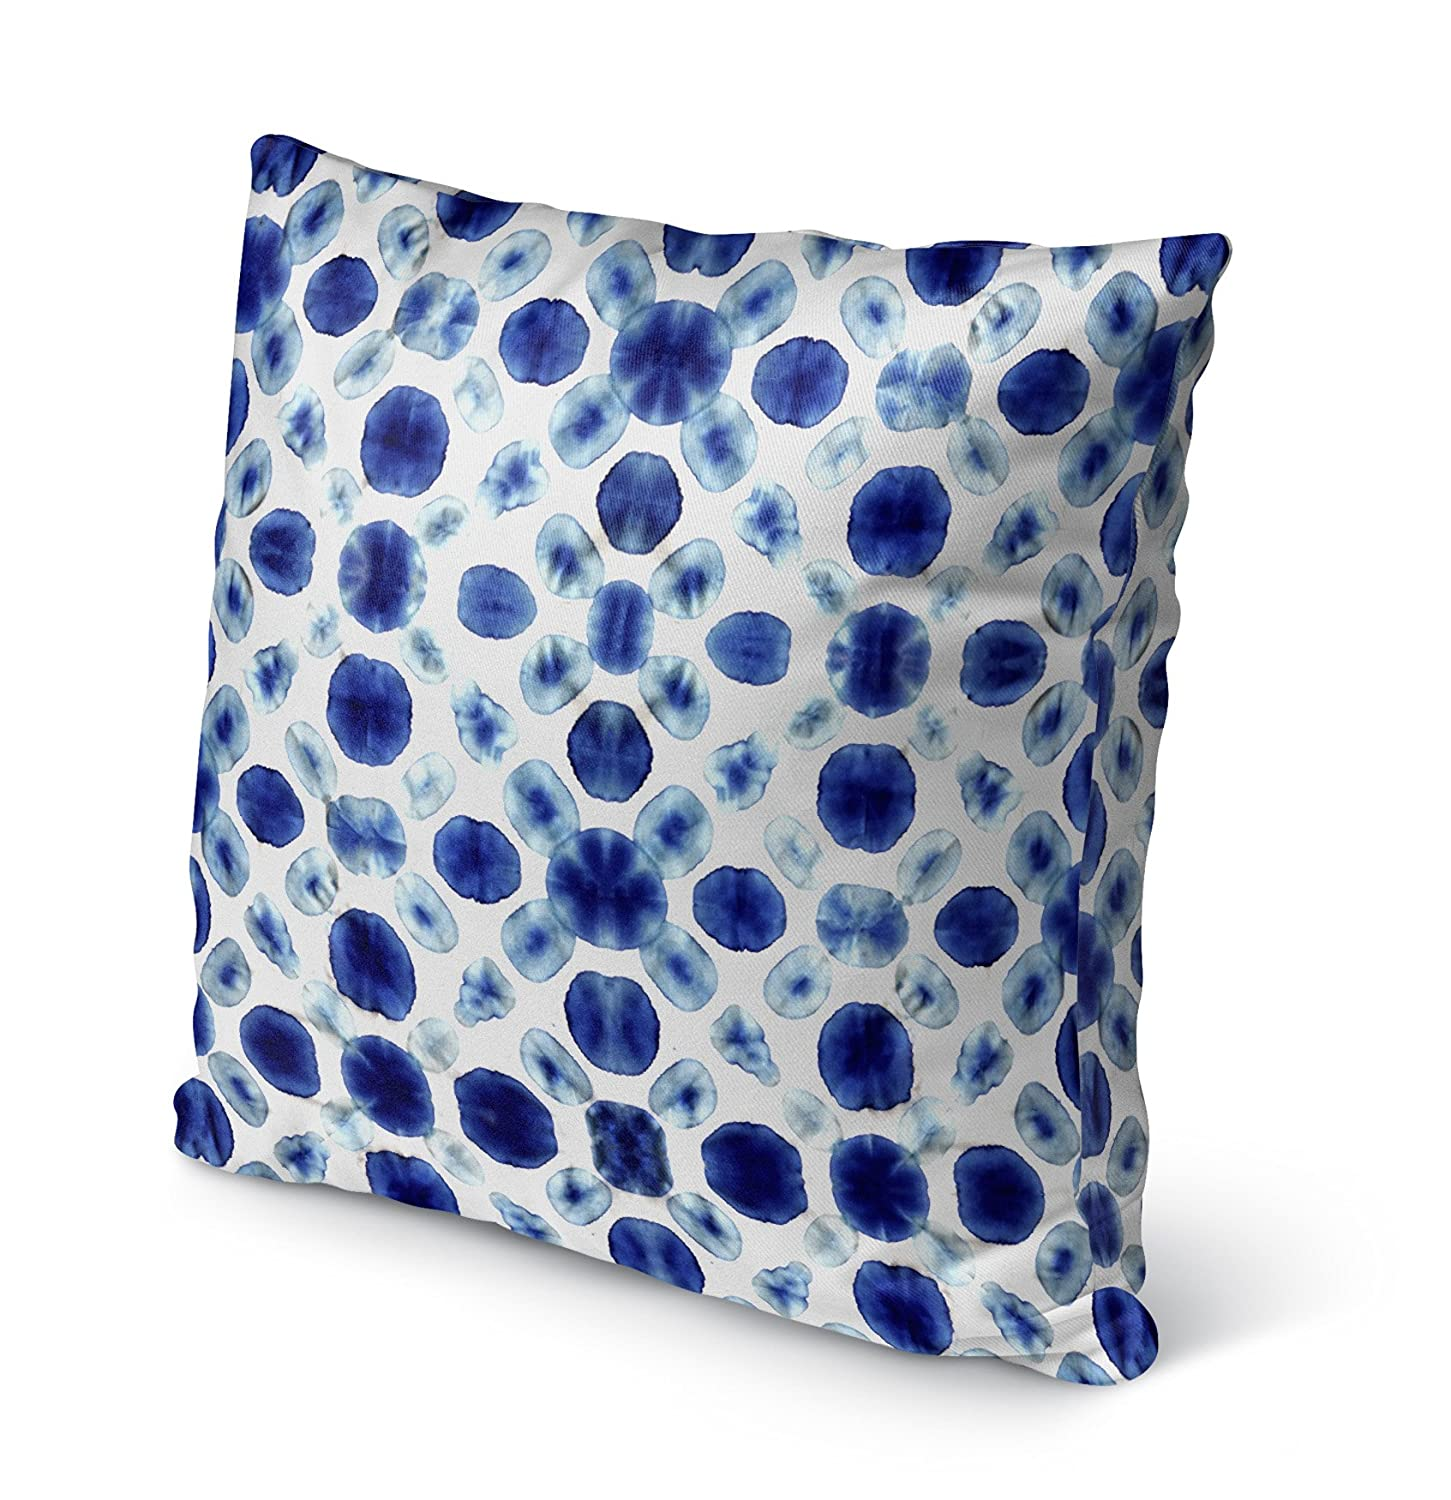 - SALTWATER Collection Blue KAVKA Designs Shibori Circle Indoor-Outdoor Pillow, Size: 20X20X6 - BBAAVC6501OD20